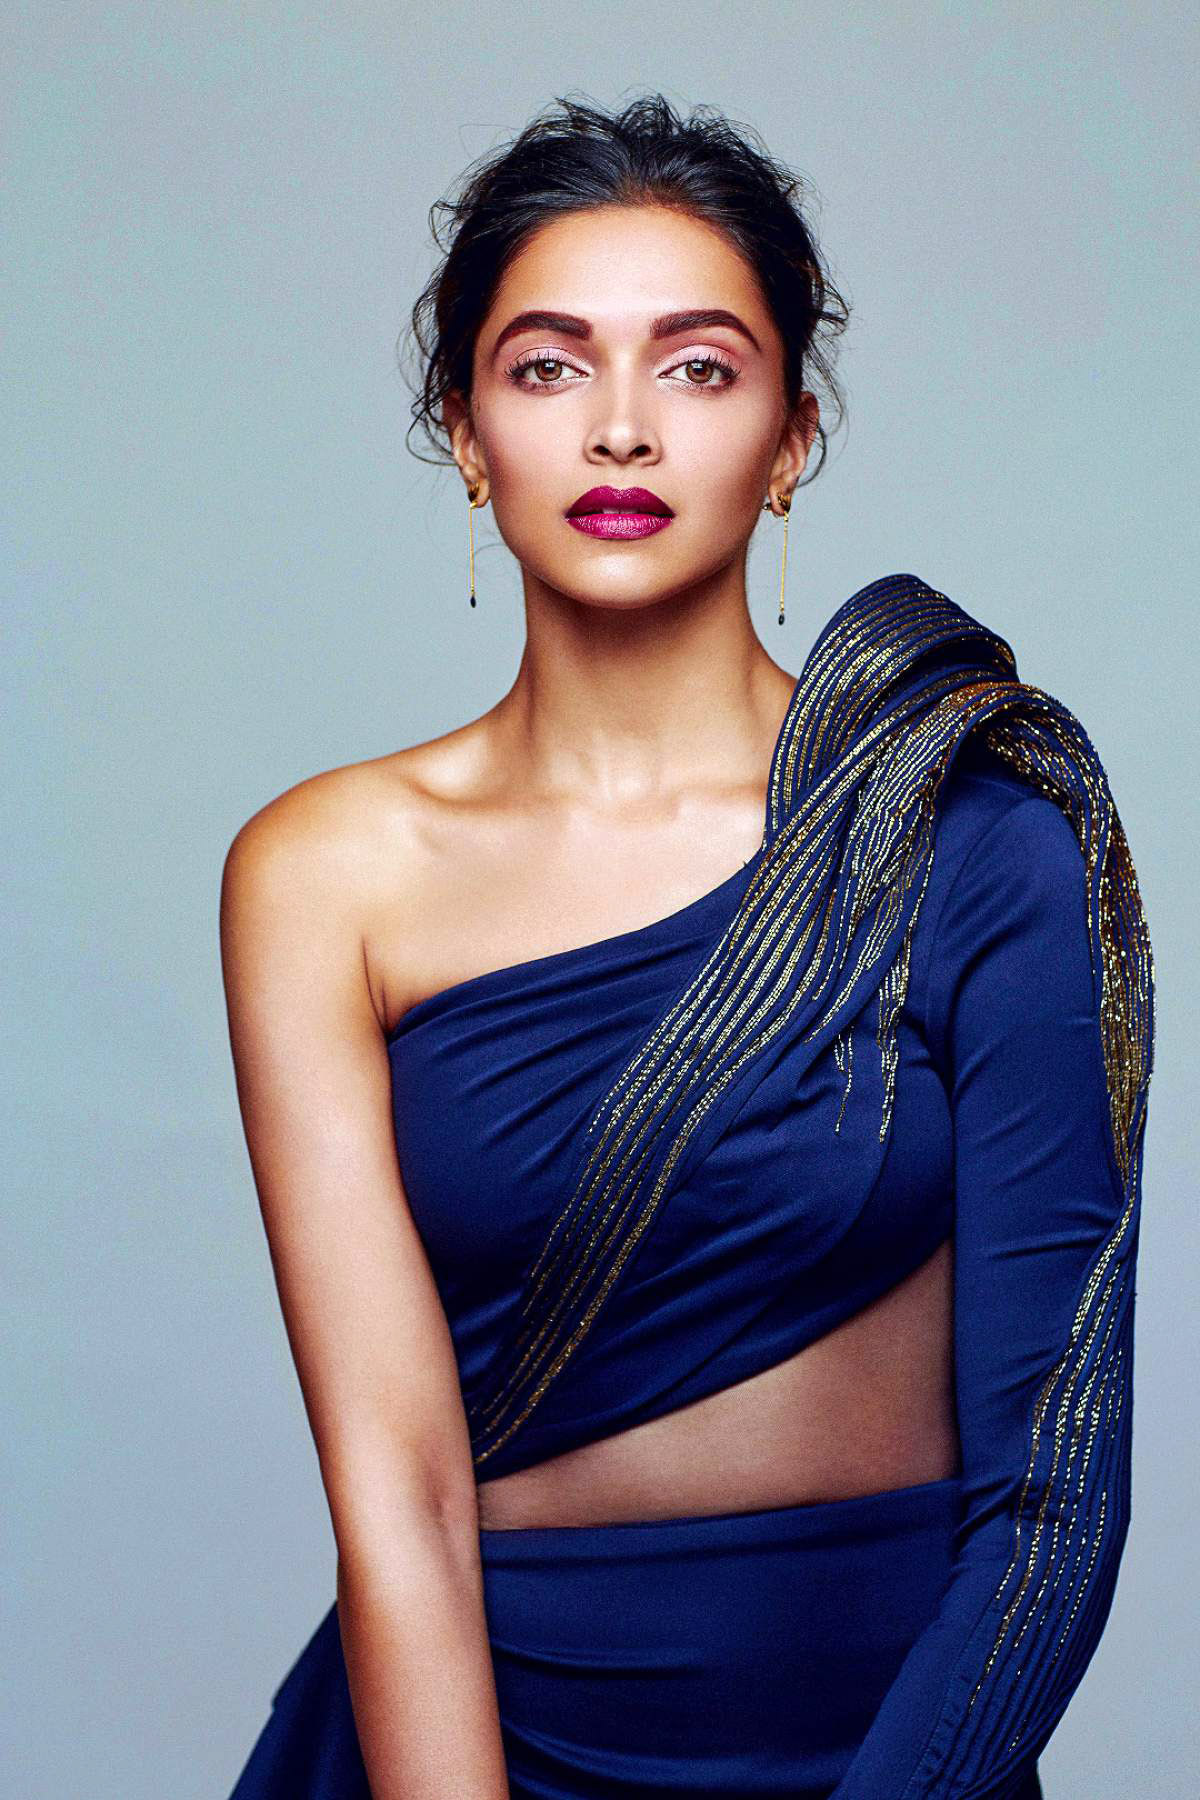 Deepika Padukone Elle Magazine2016 December Photoshoot